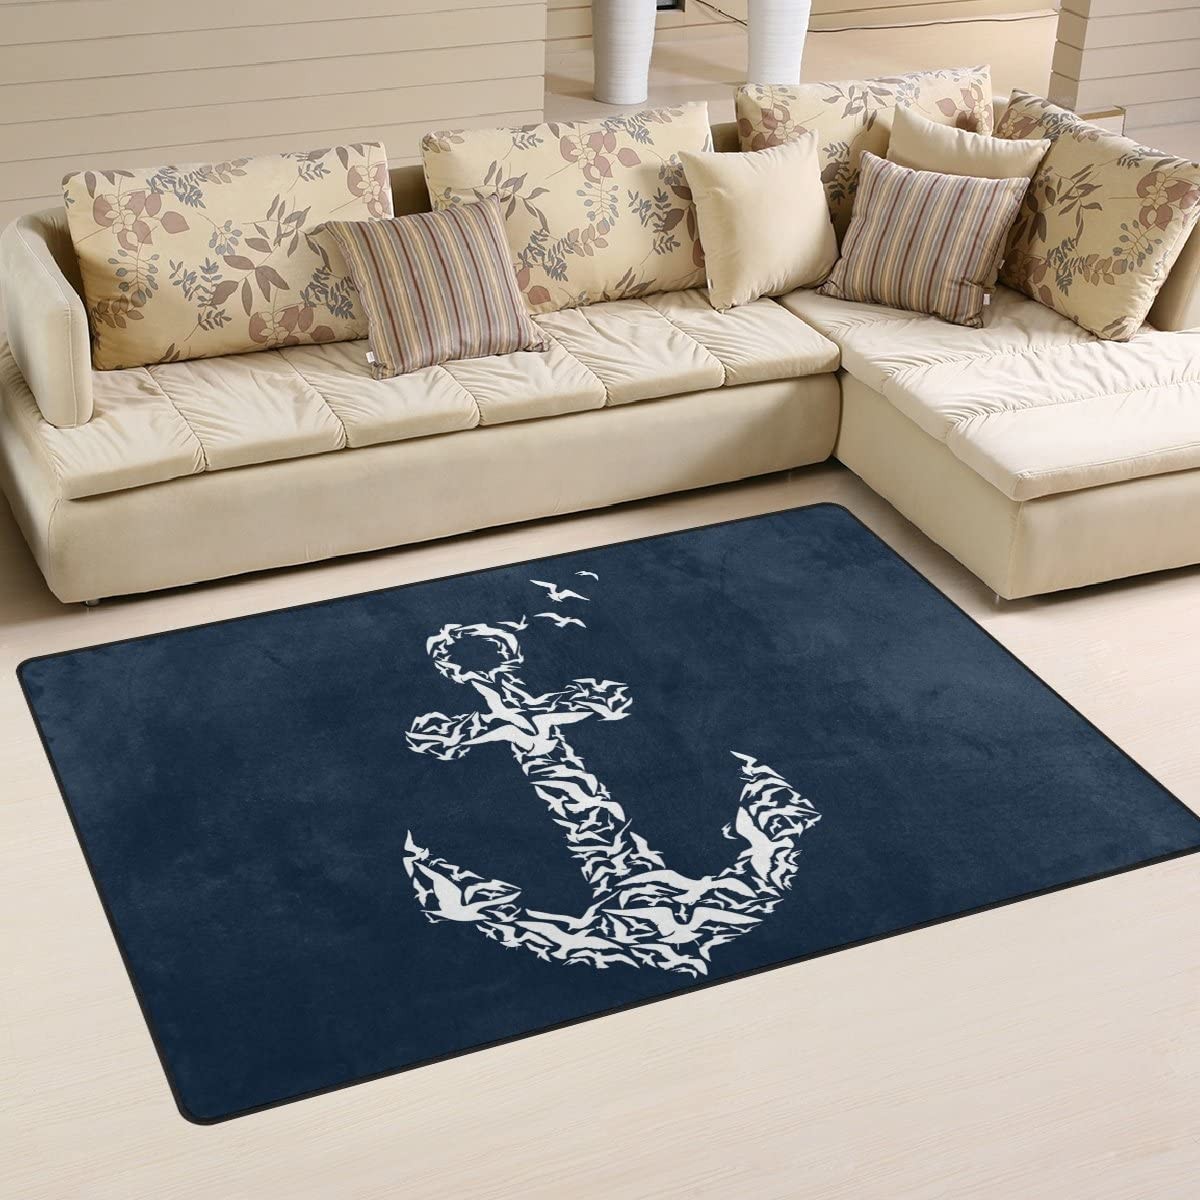 Yochoice Non-slip Area Rugs Home Decor, Vintage Retro Seagull Anchor Pattern Floor Mat Living Room Bedroom Carpets Doormats 60 x 39 inches